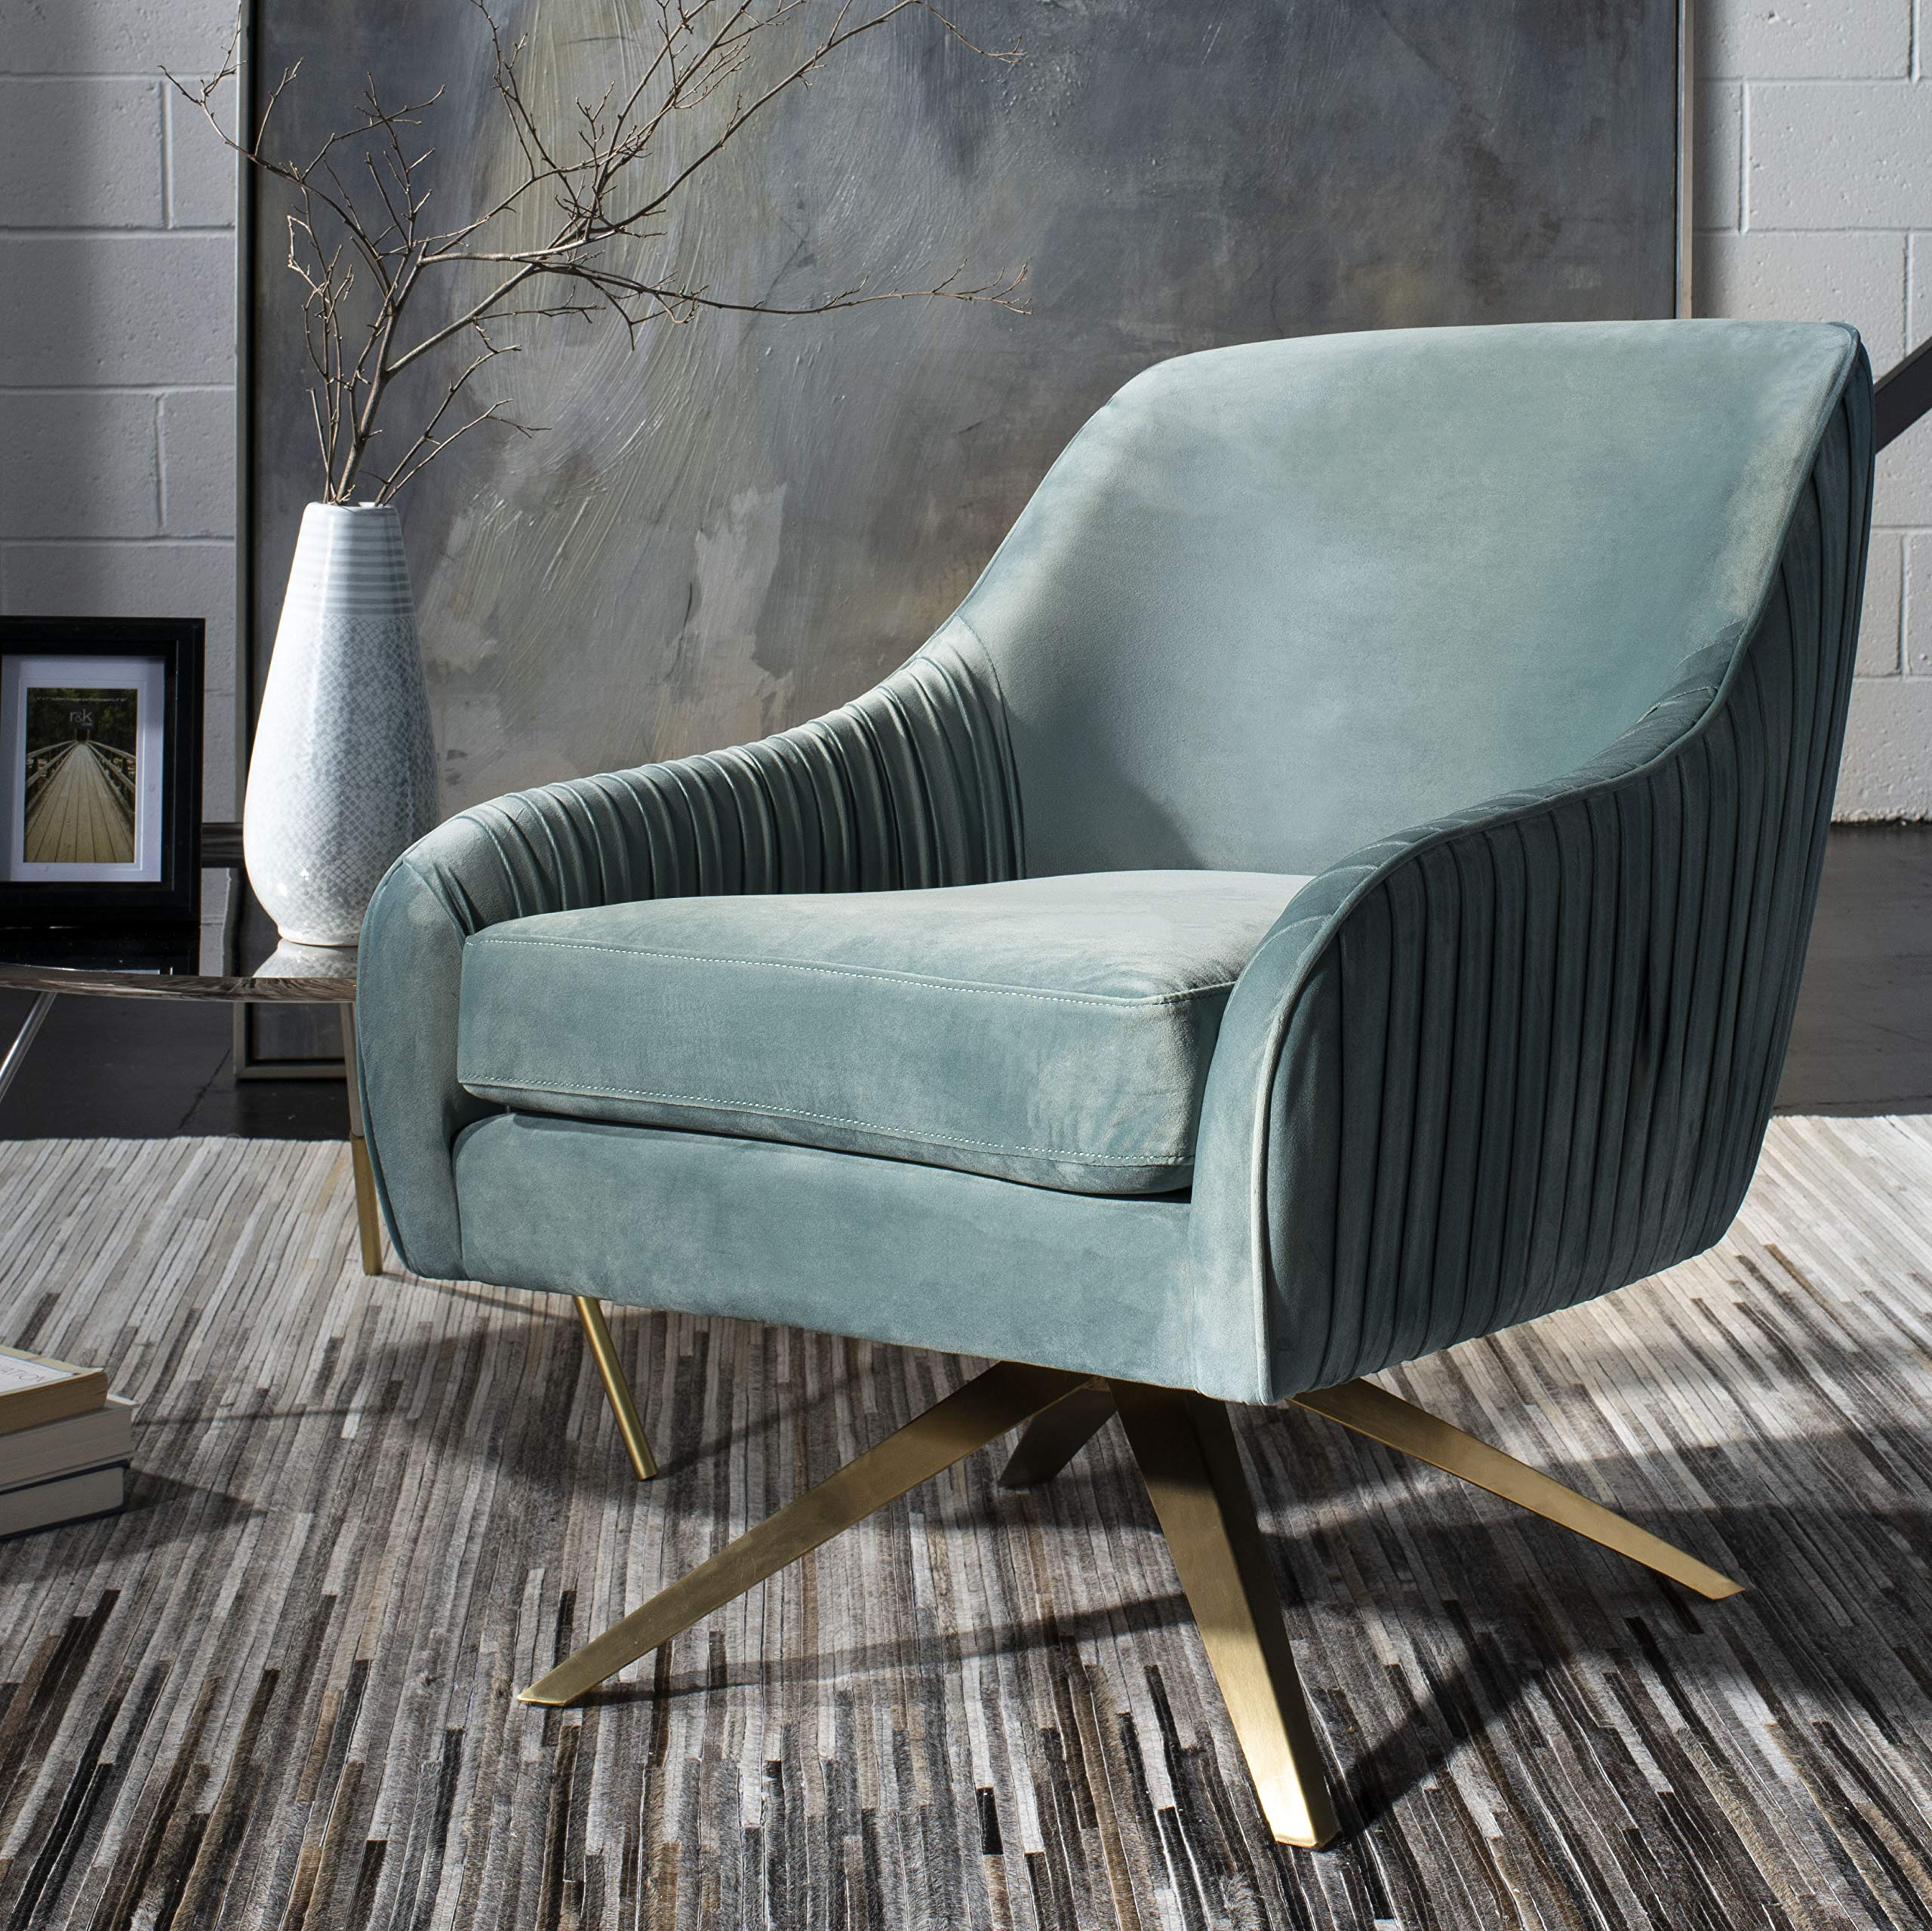 Safavieh Home Collection Tiffany Pleated Swivel Seafoam Arm Accent Chair Gold by Safavieh